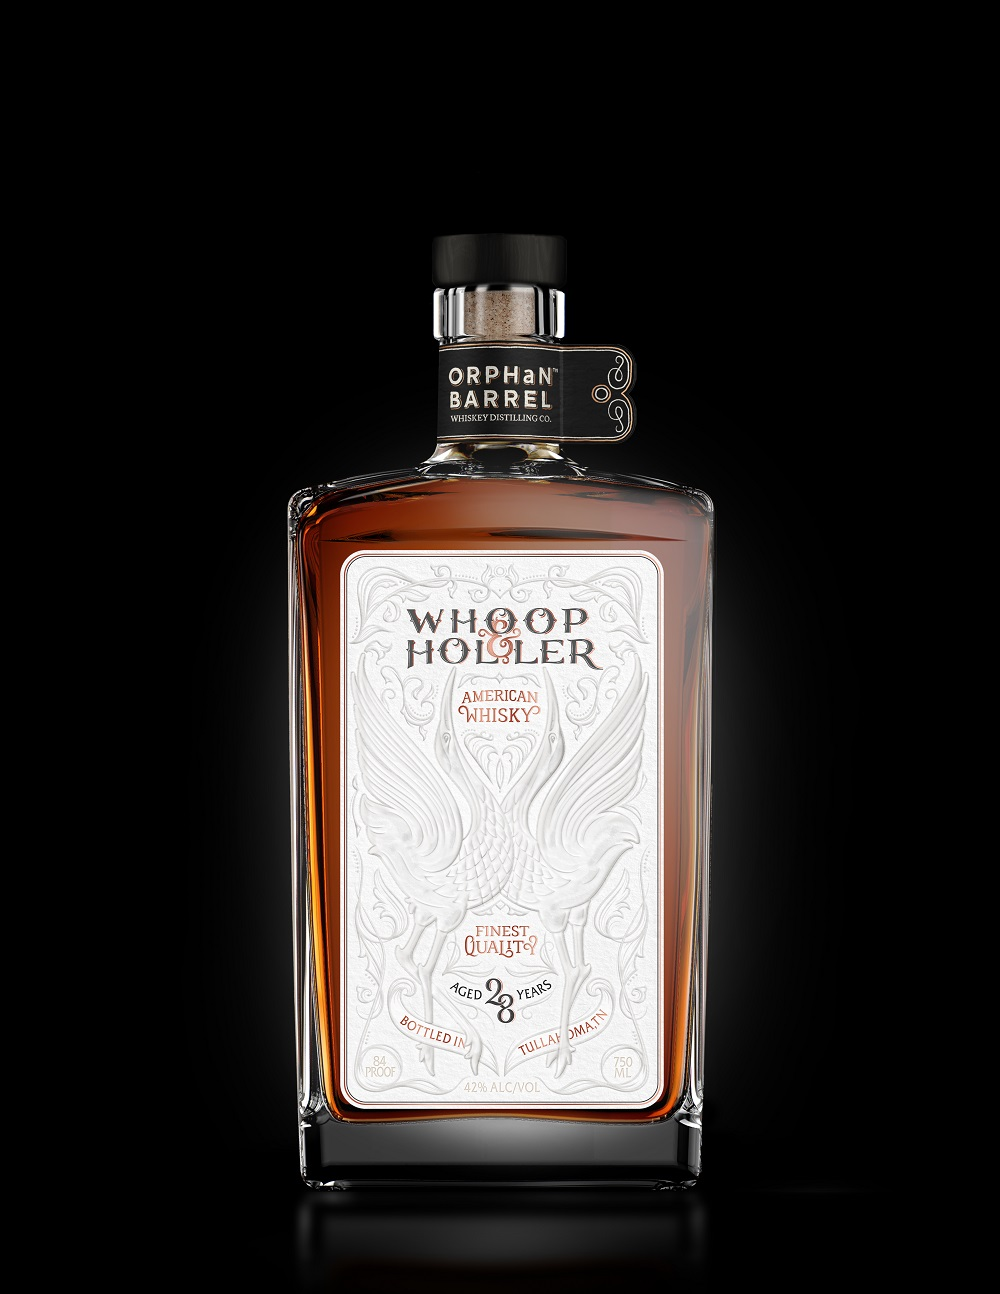 Diageo Orphan Barrel Project Whoop & Holler American Whiskey 28 Years Old